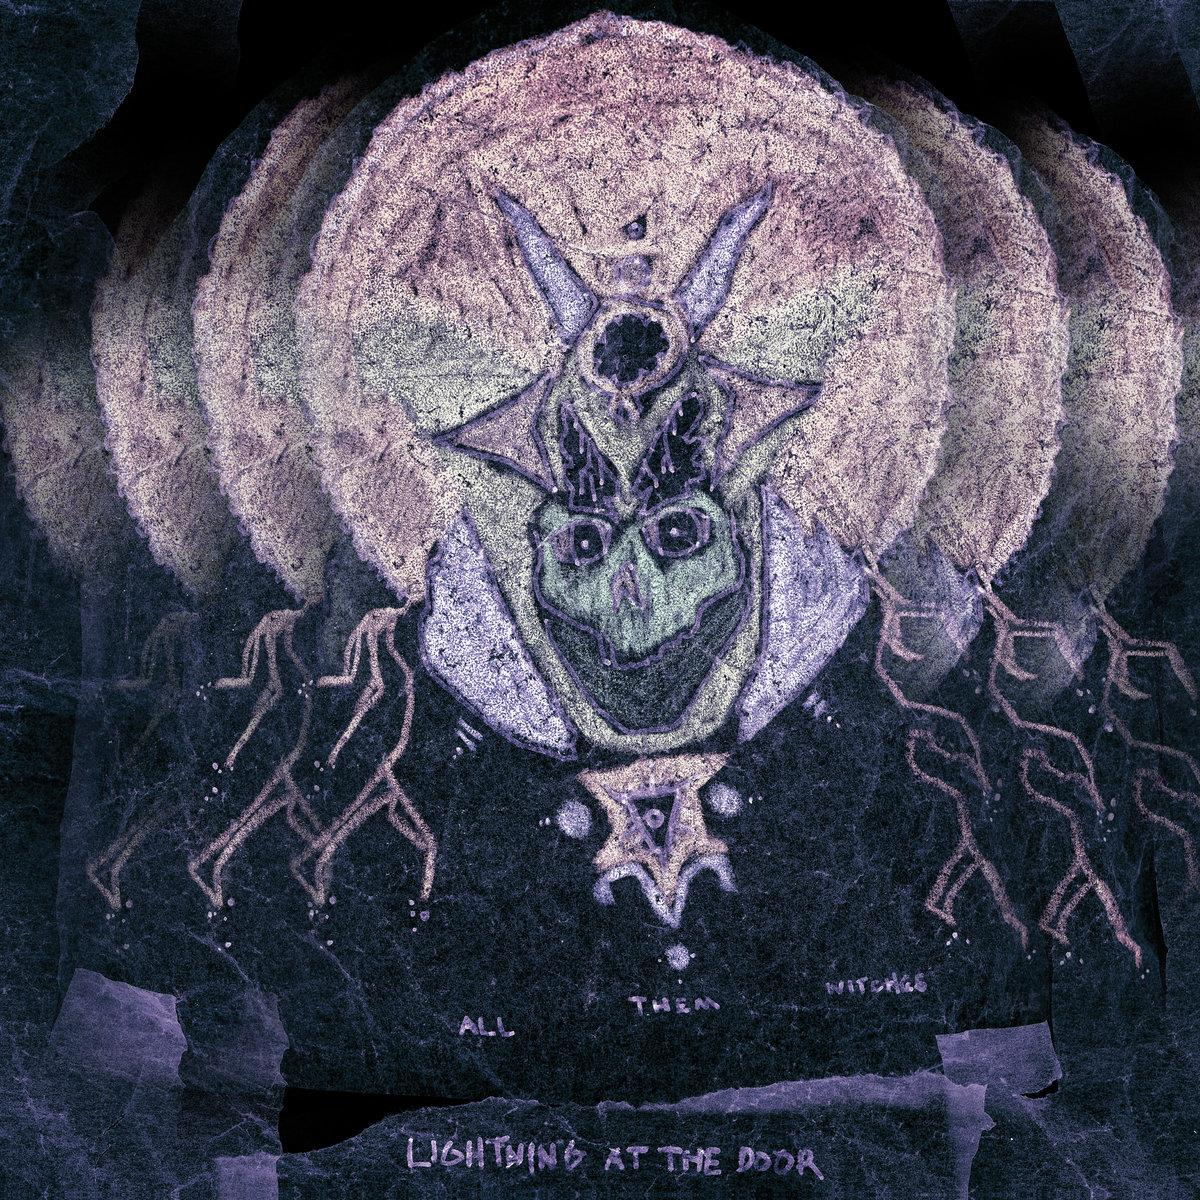 All Them Witches - Lightning At The Door [LTD LP]